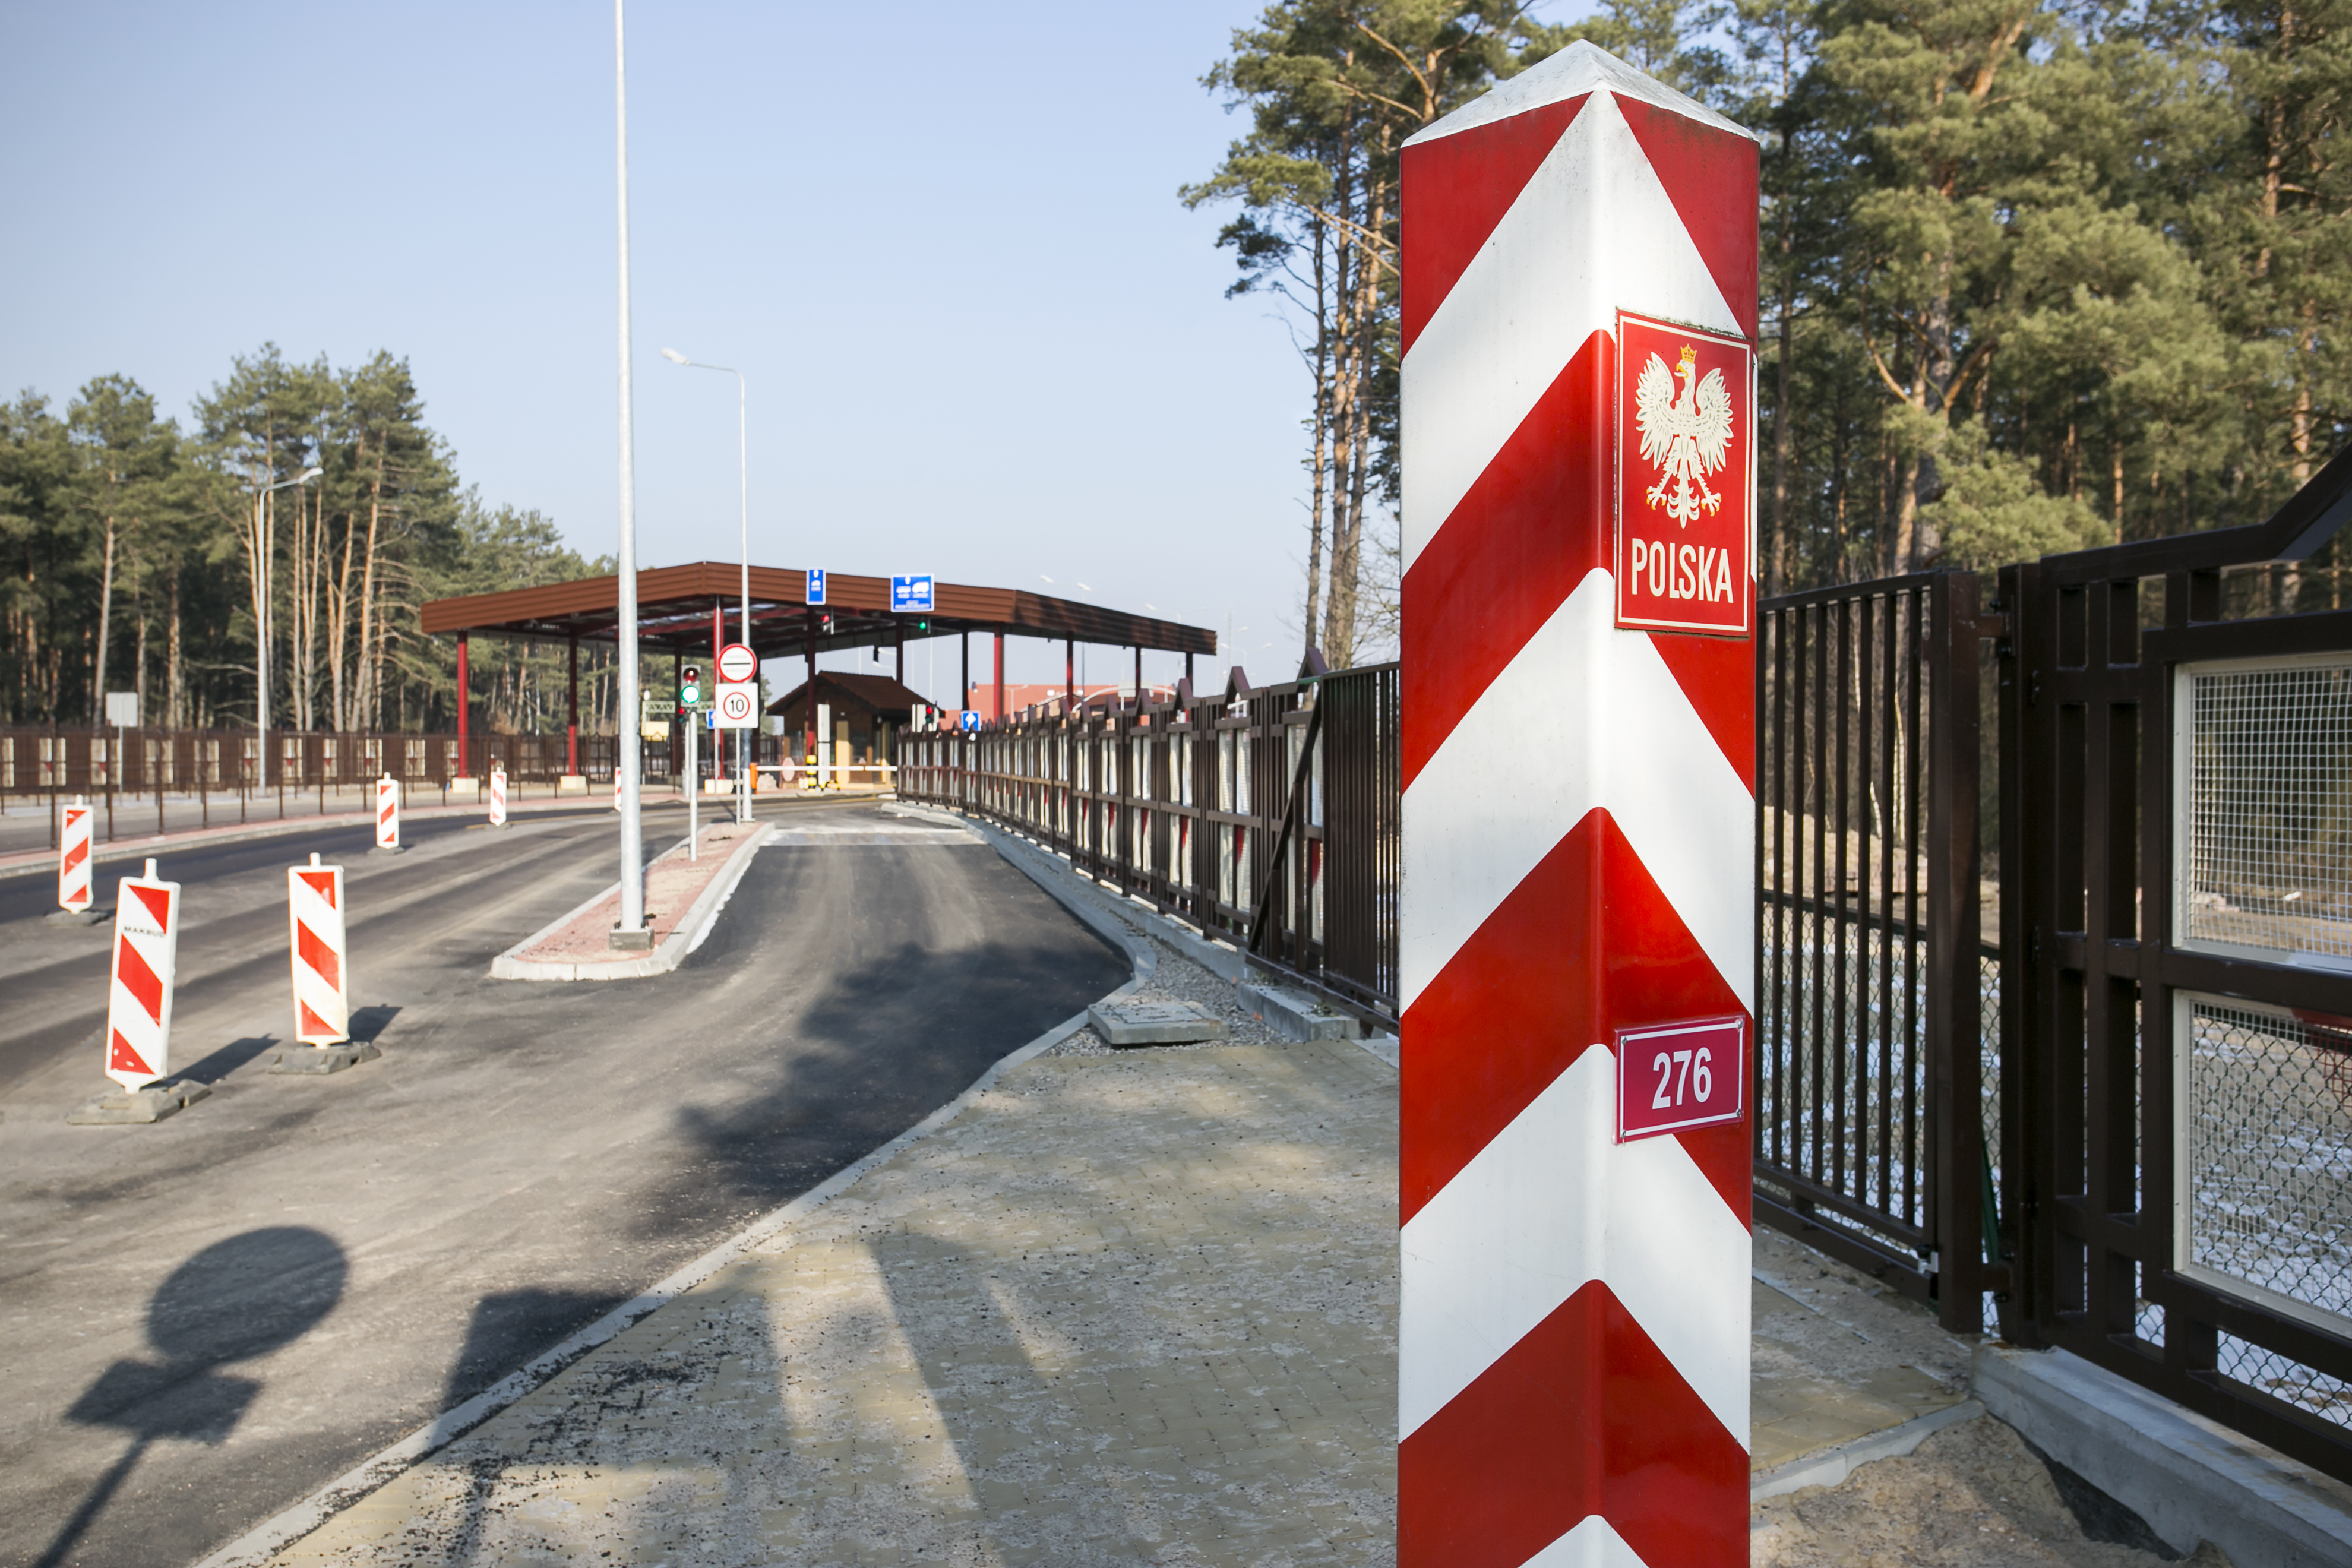 The area of road border crossing in Połowce